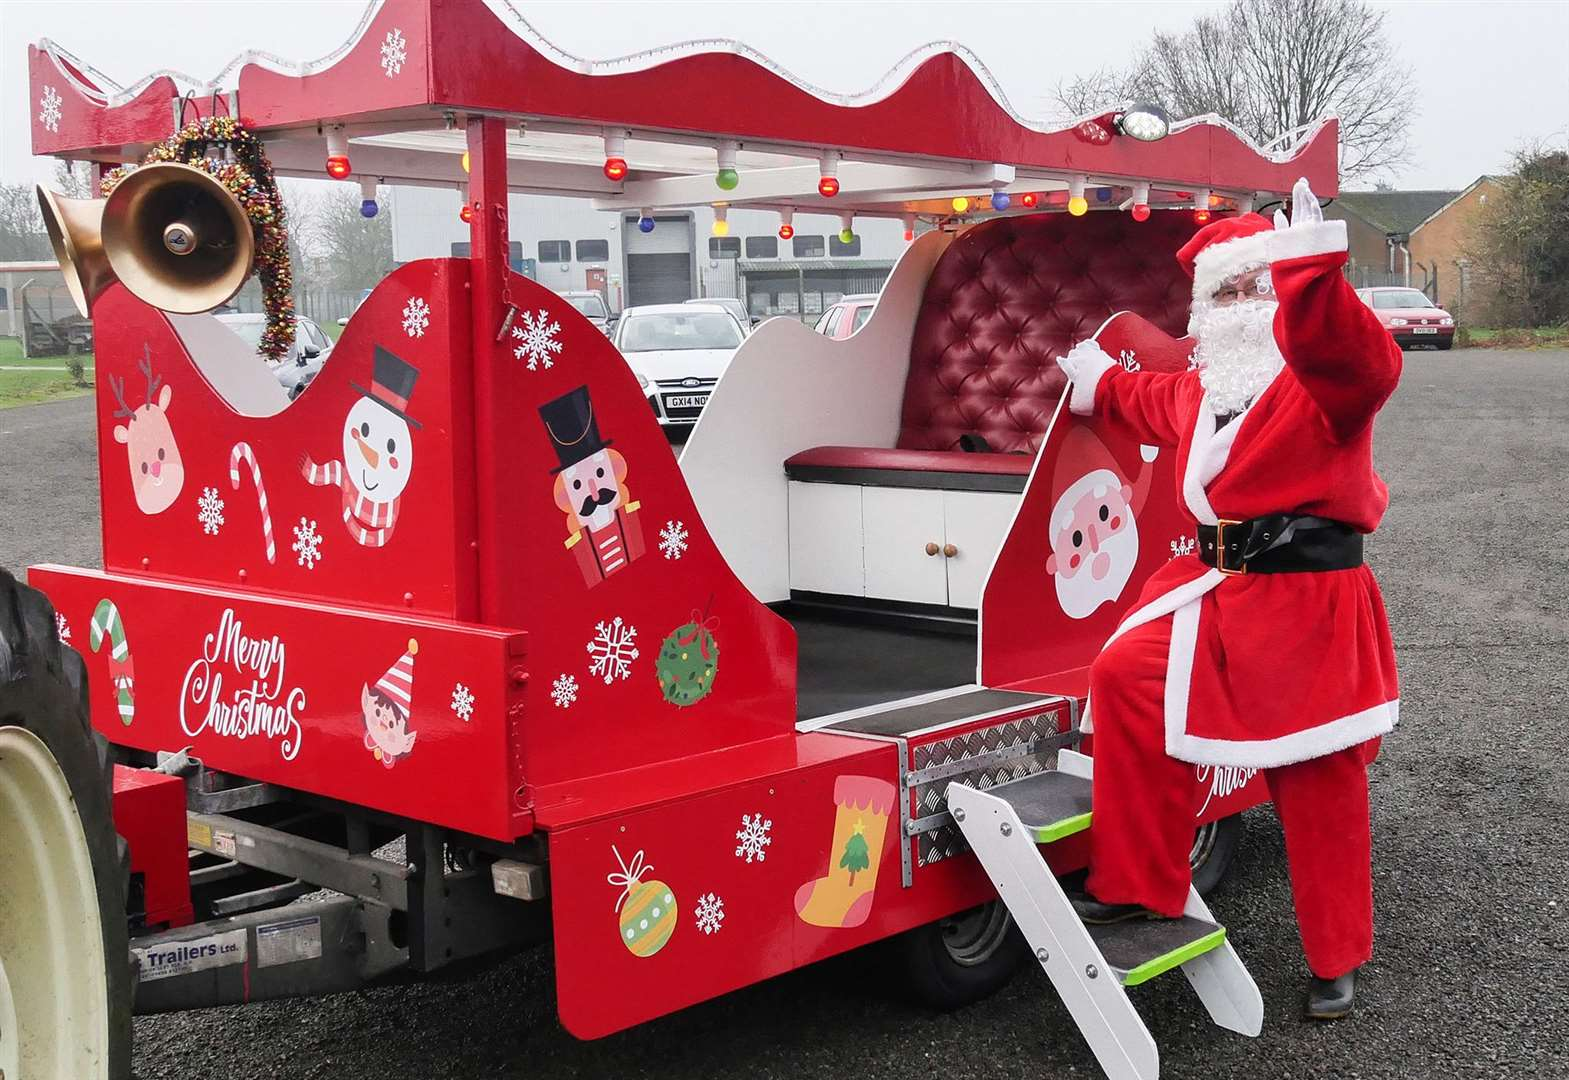 Find out when you can catch a glimpse of Santa in his sleigh